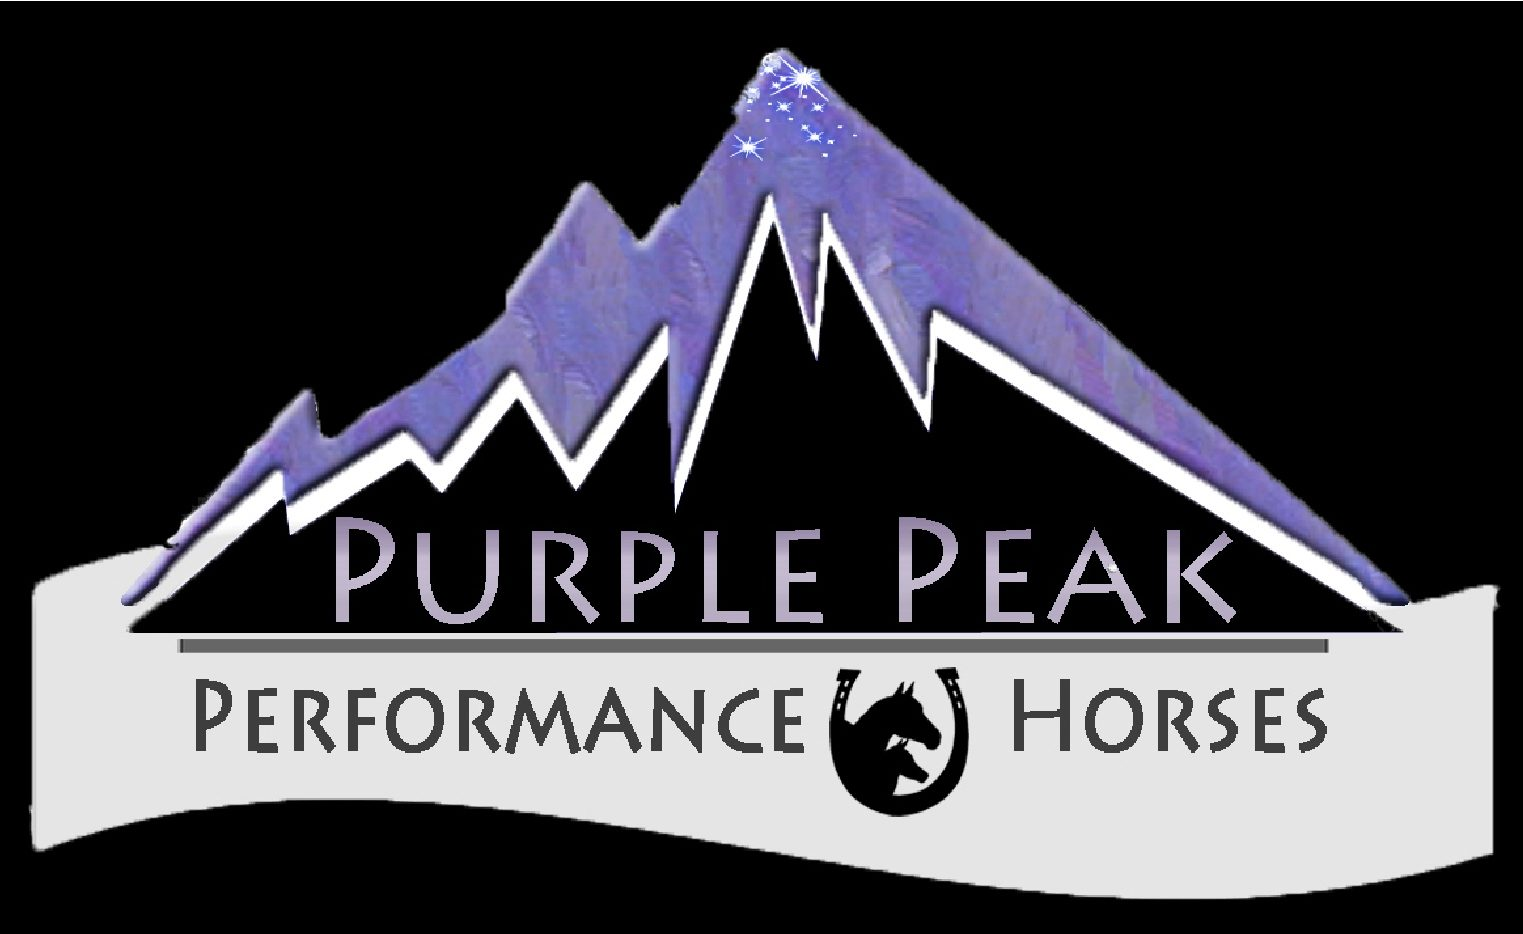 Purple Peak Performance Horses